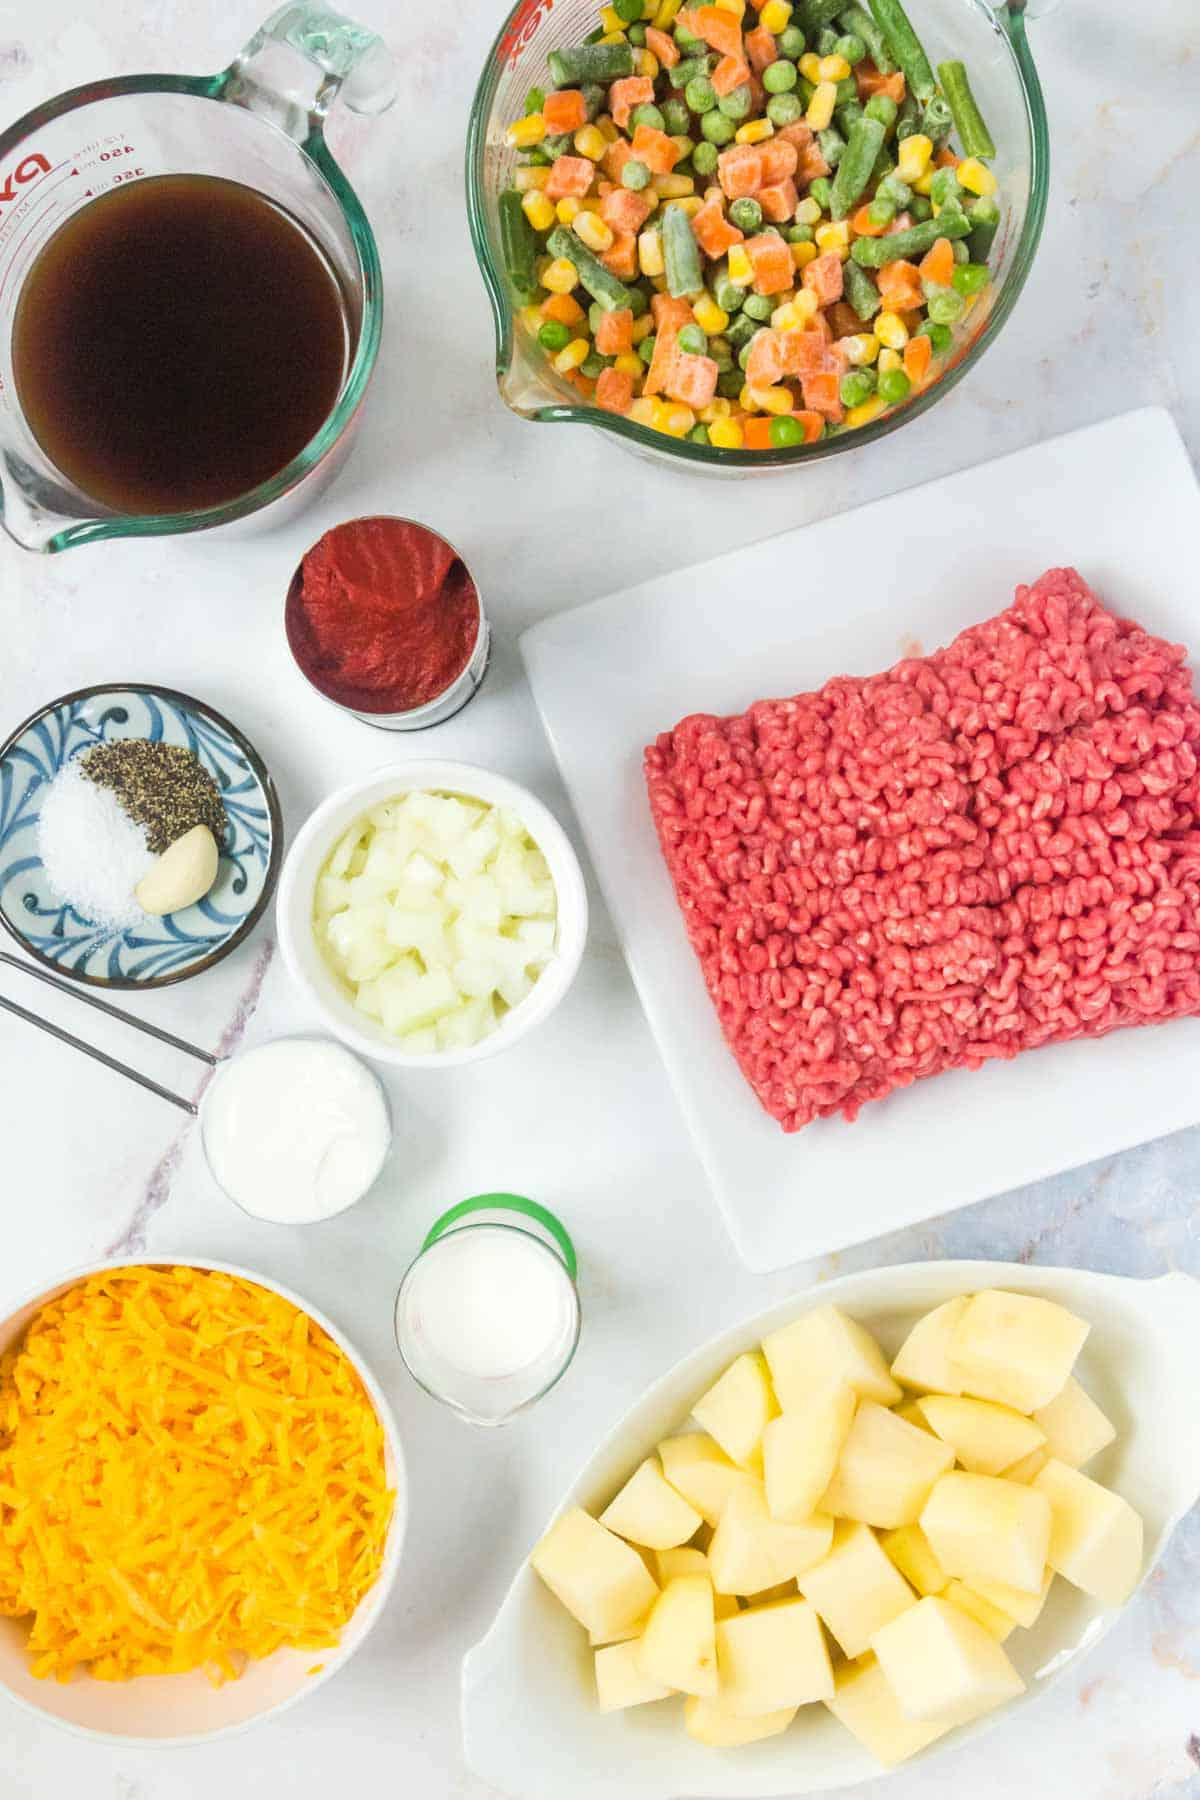 Ingredients for chili in white bowls and measuring cups, including ground beef, frozen mixed vegetables, and potatoes